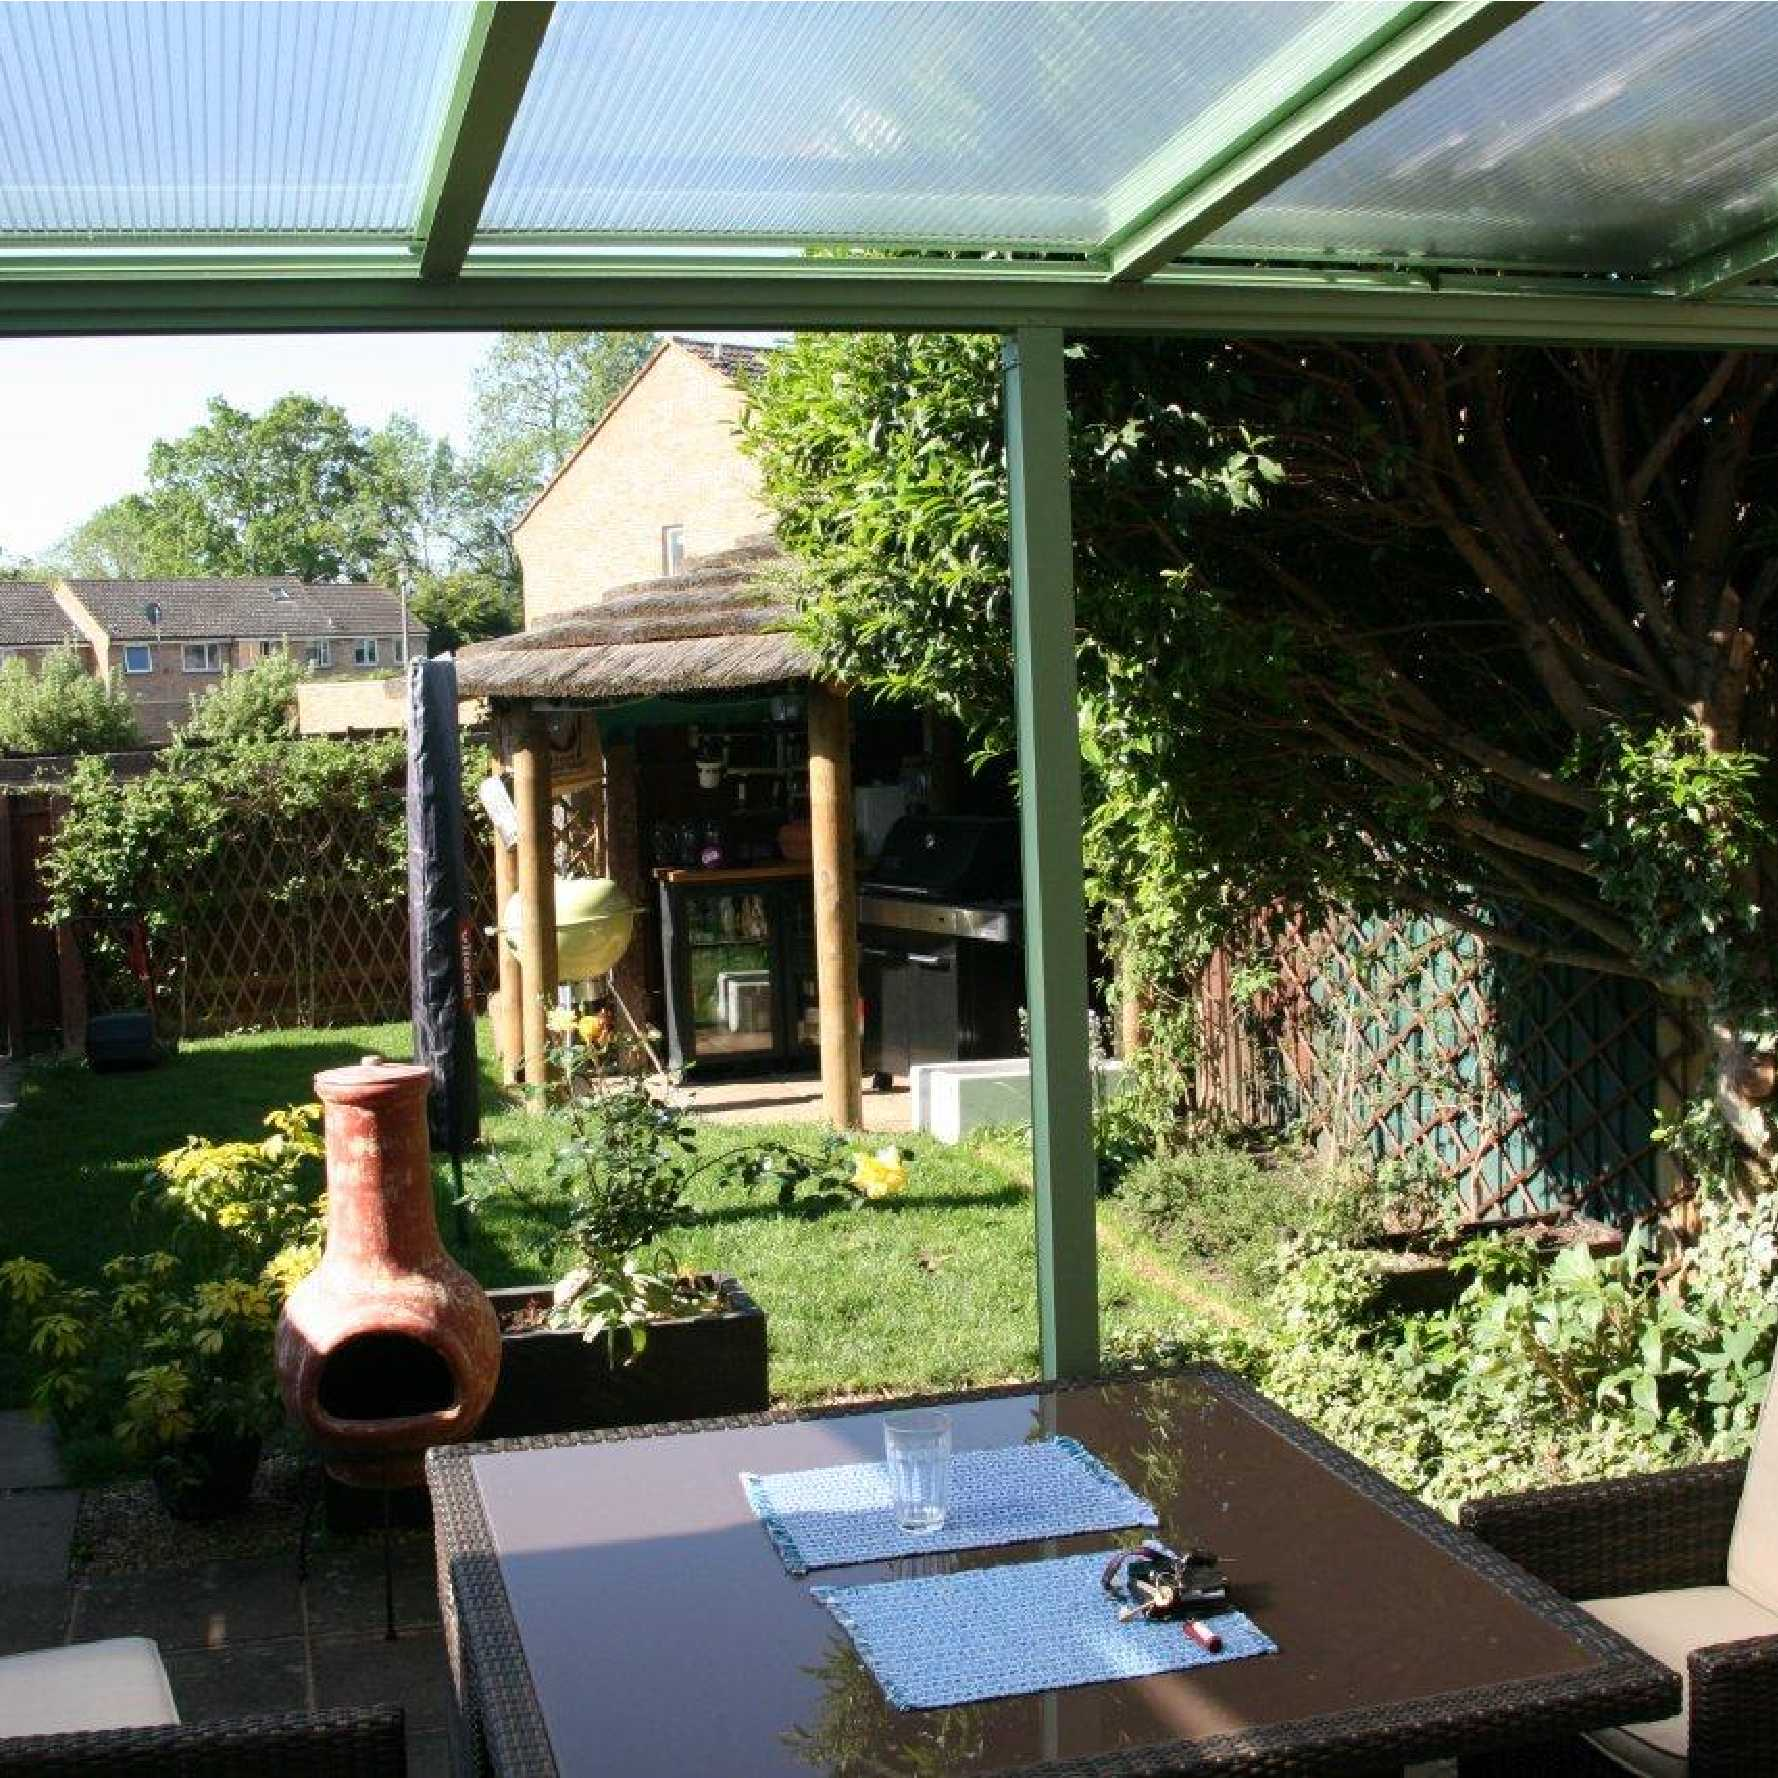 Affordable Omega Smart White Lean-To Canopy with 16mm Polycarbonate Glazing - 4.2m (W) x 1.5m (P), (3) Supporting Posts